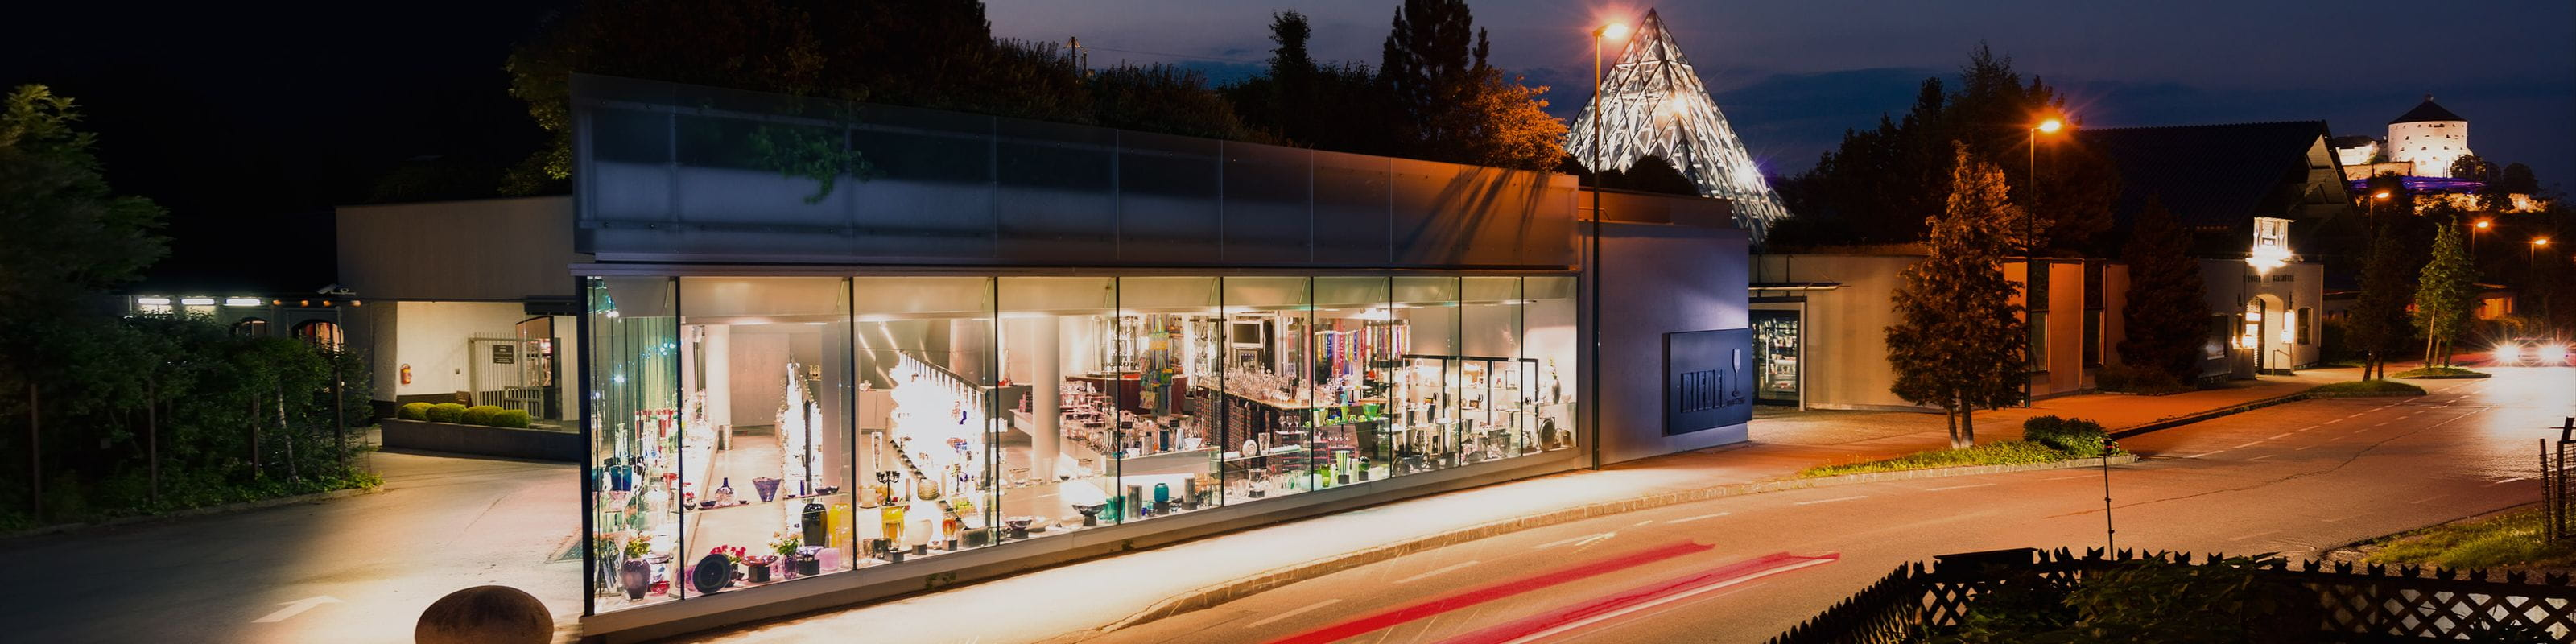 RIEDEL Flagship Store Kufstein at night